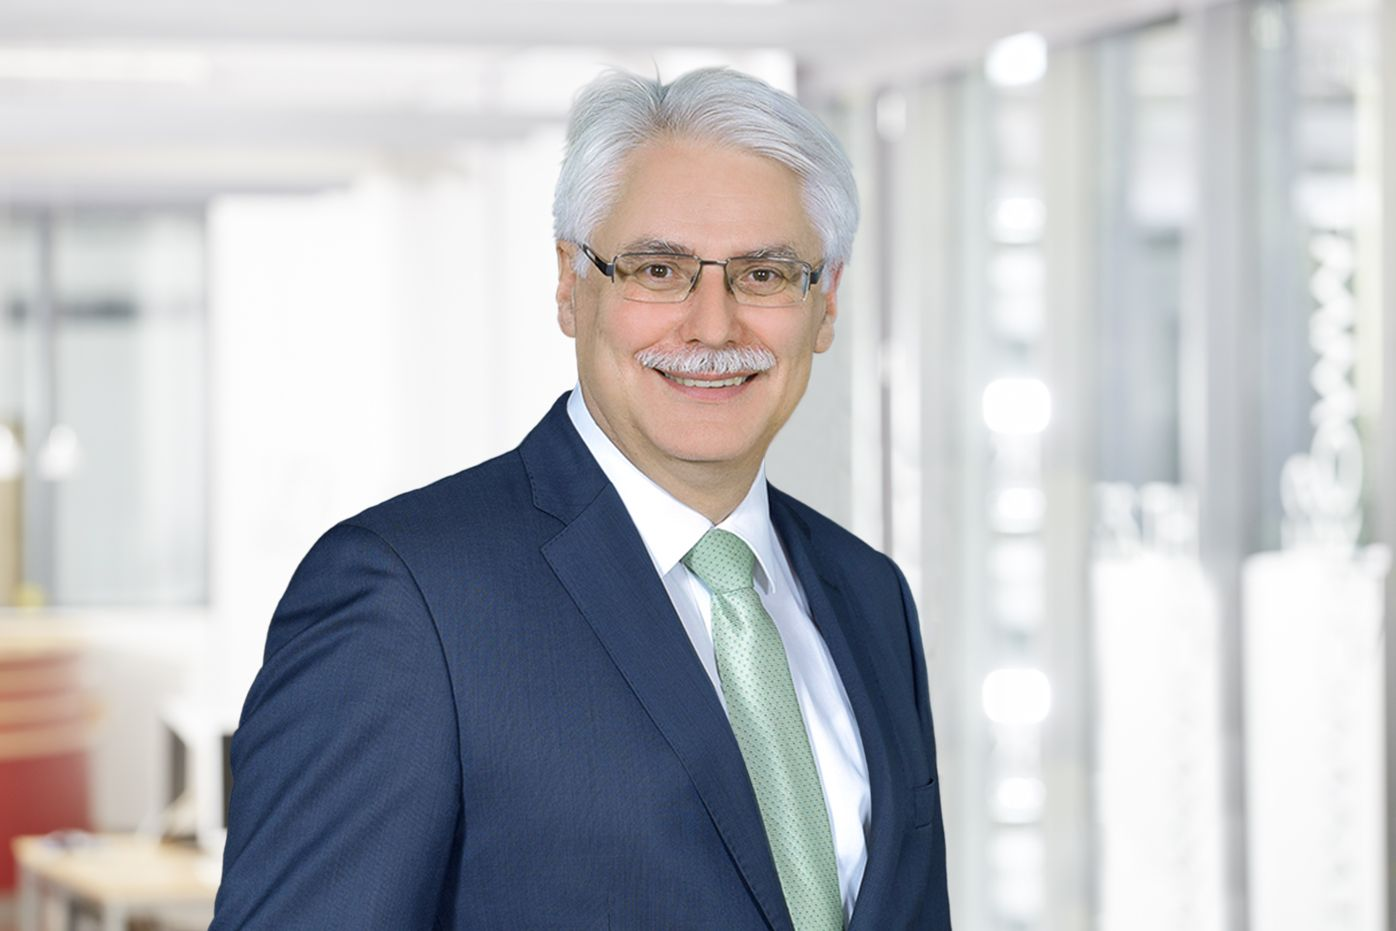 Business area personnel and business management director norbert wetter